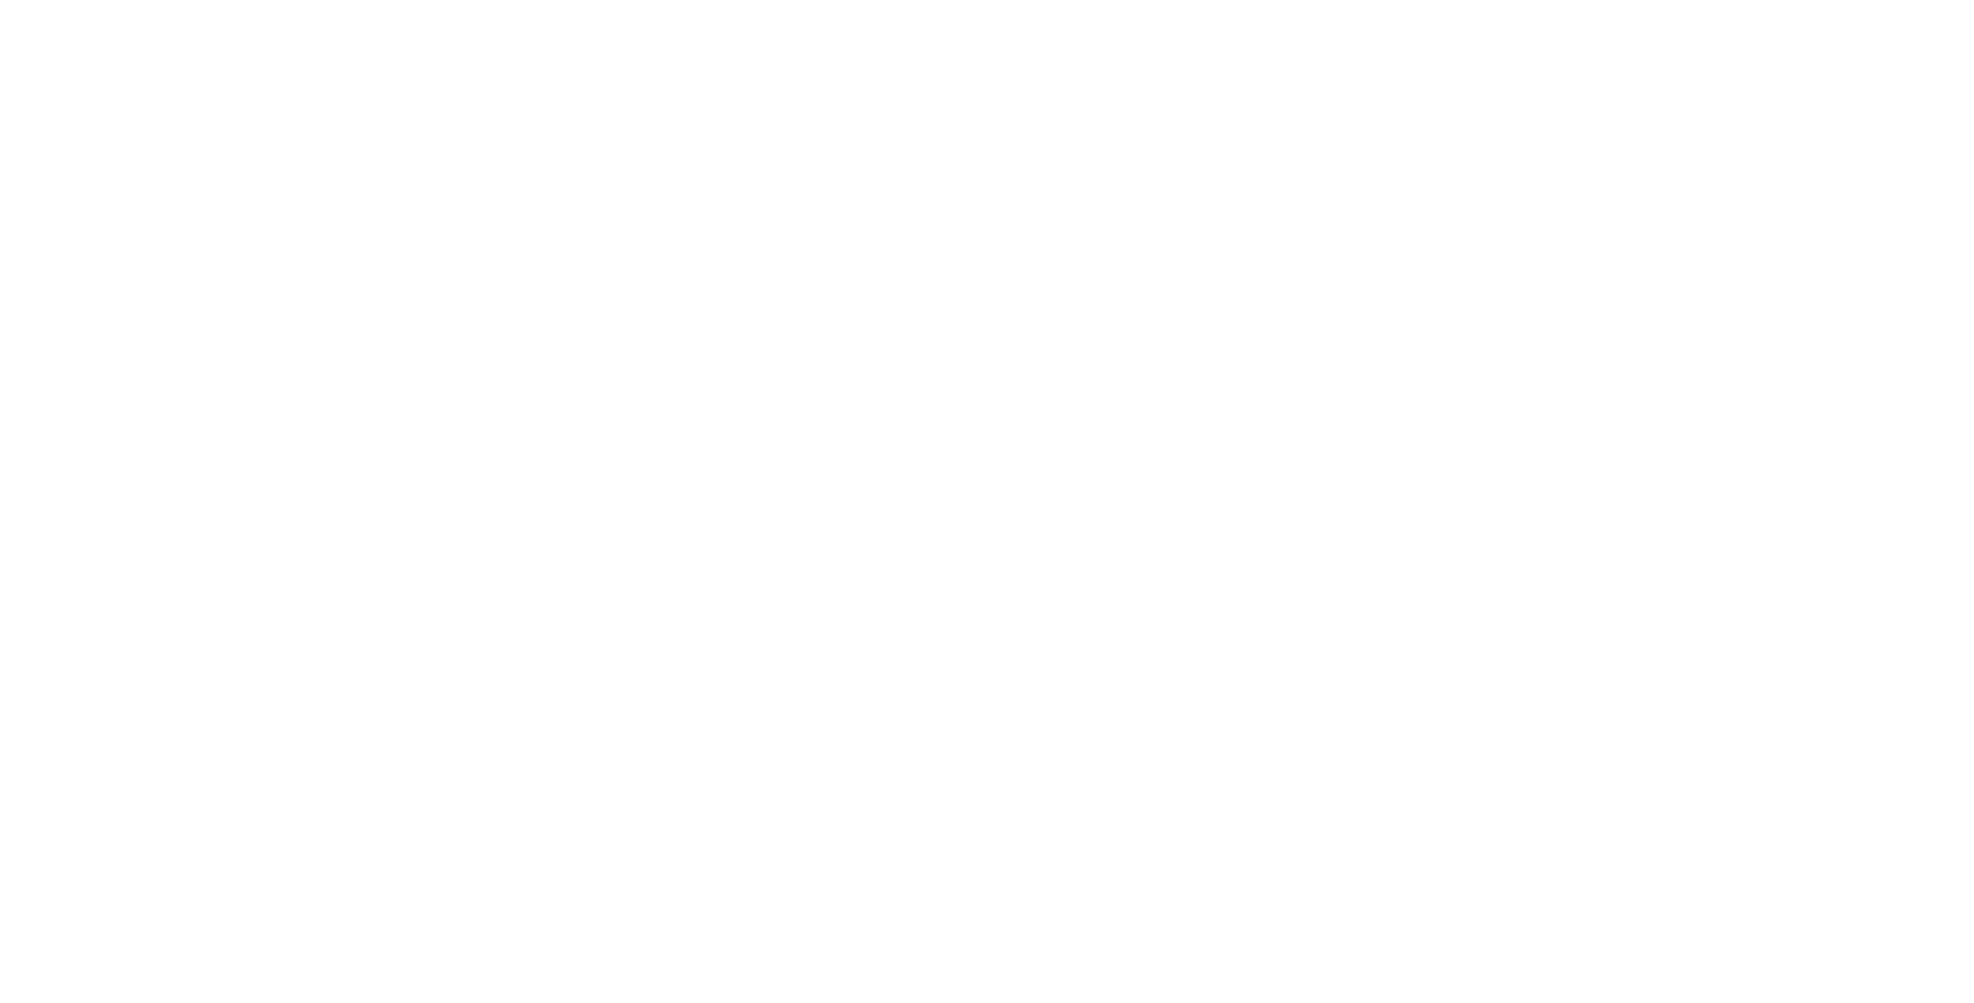 Dragshow Bar Lellebel